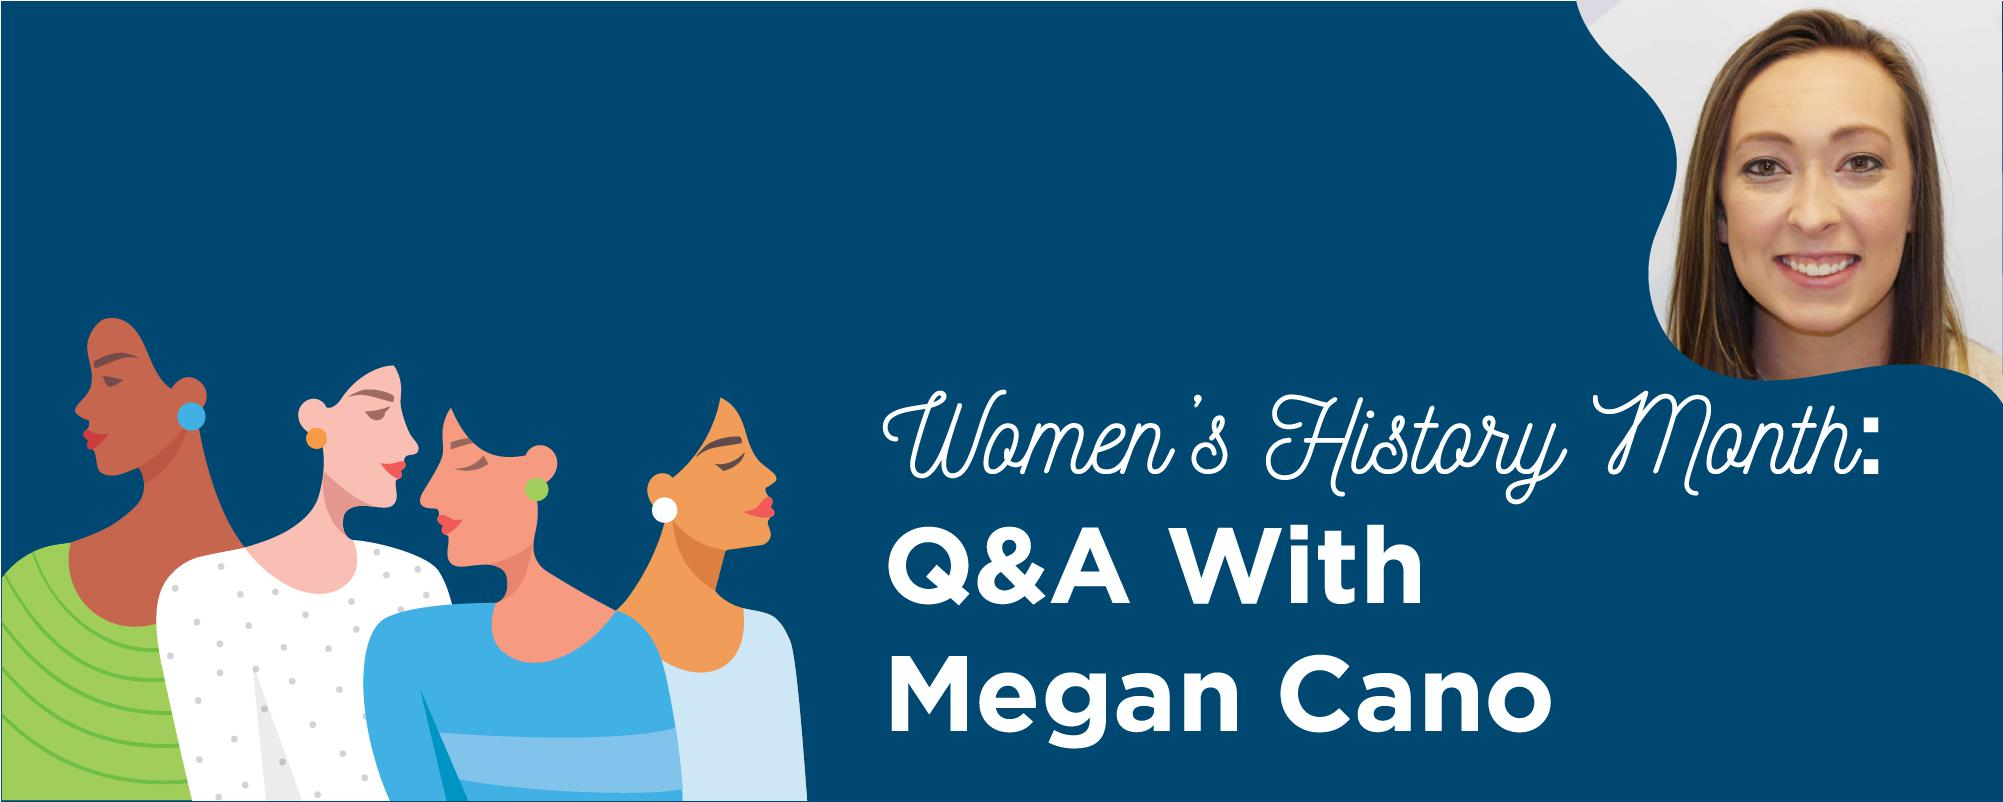 Women's History Month: Q&A With Megan Cano